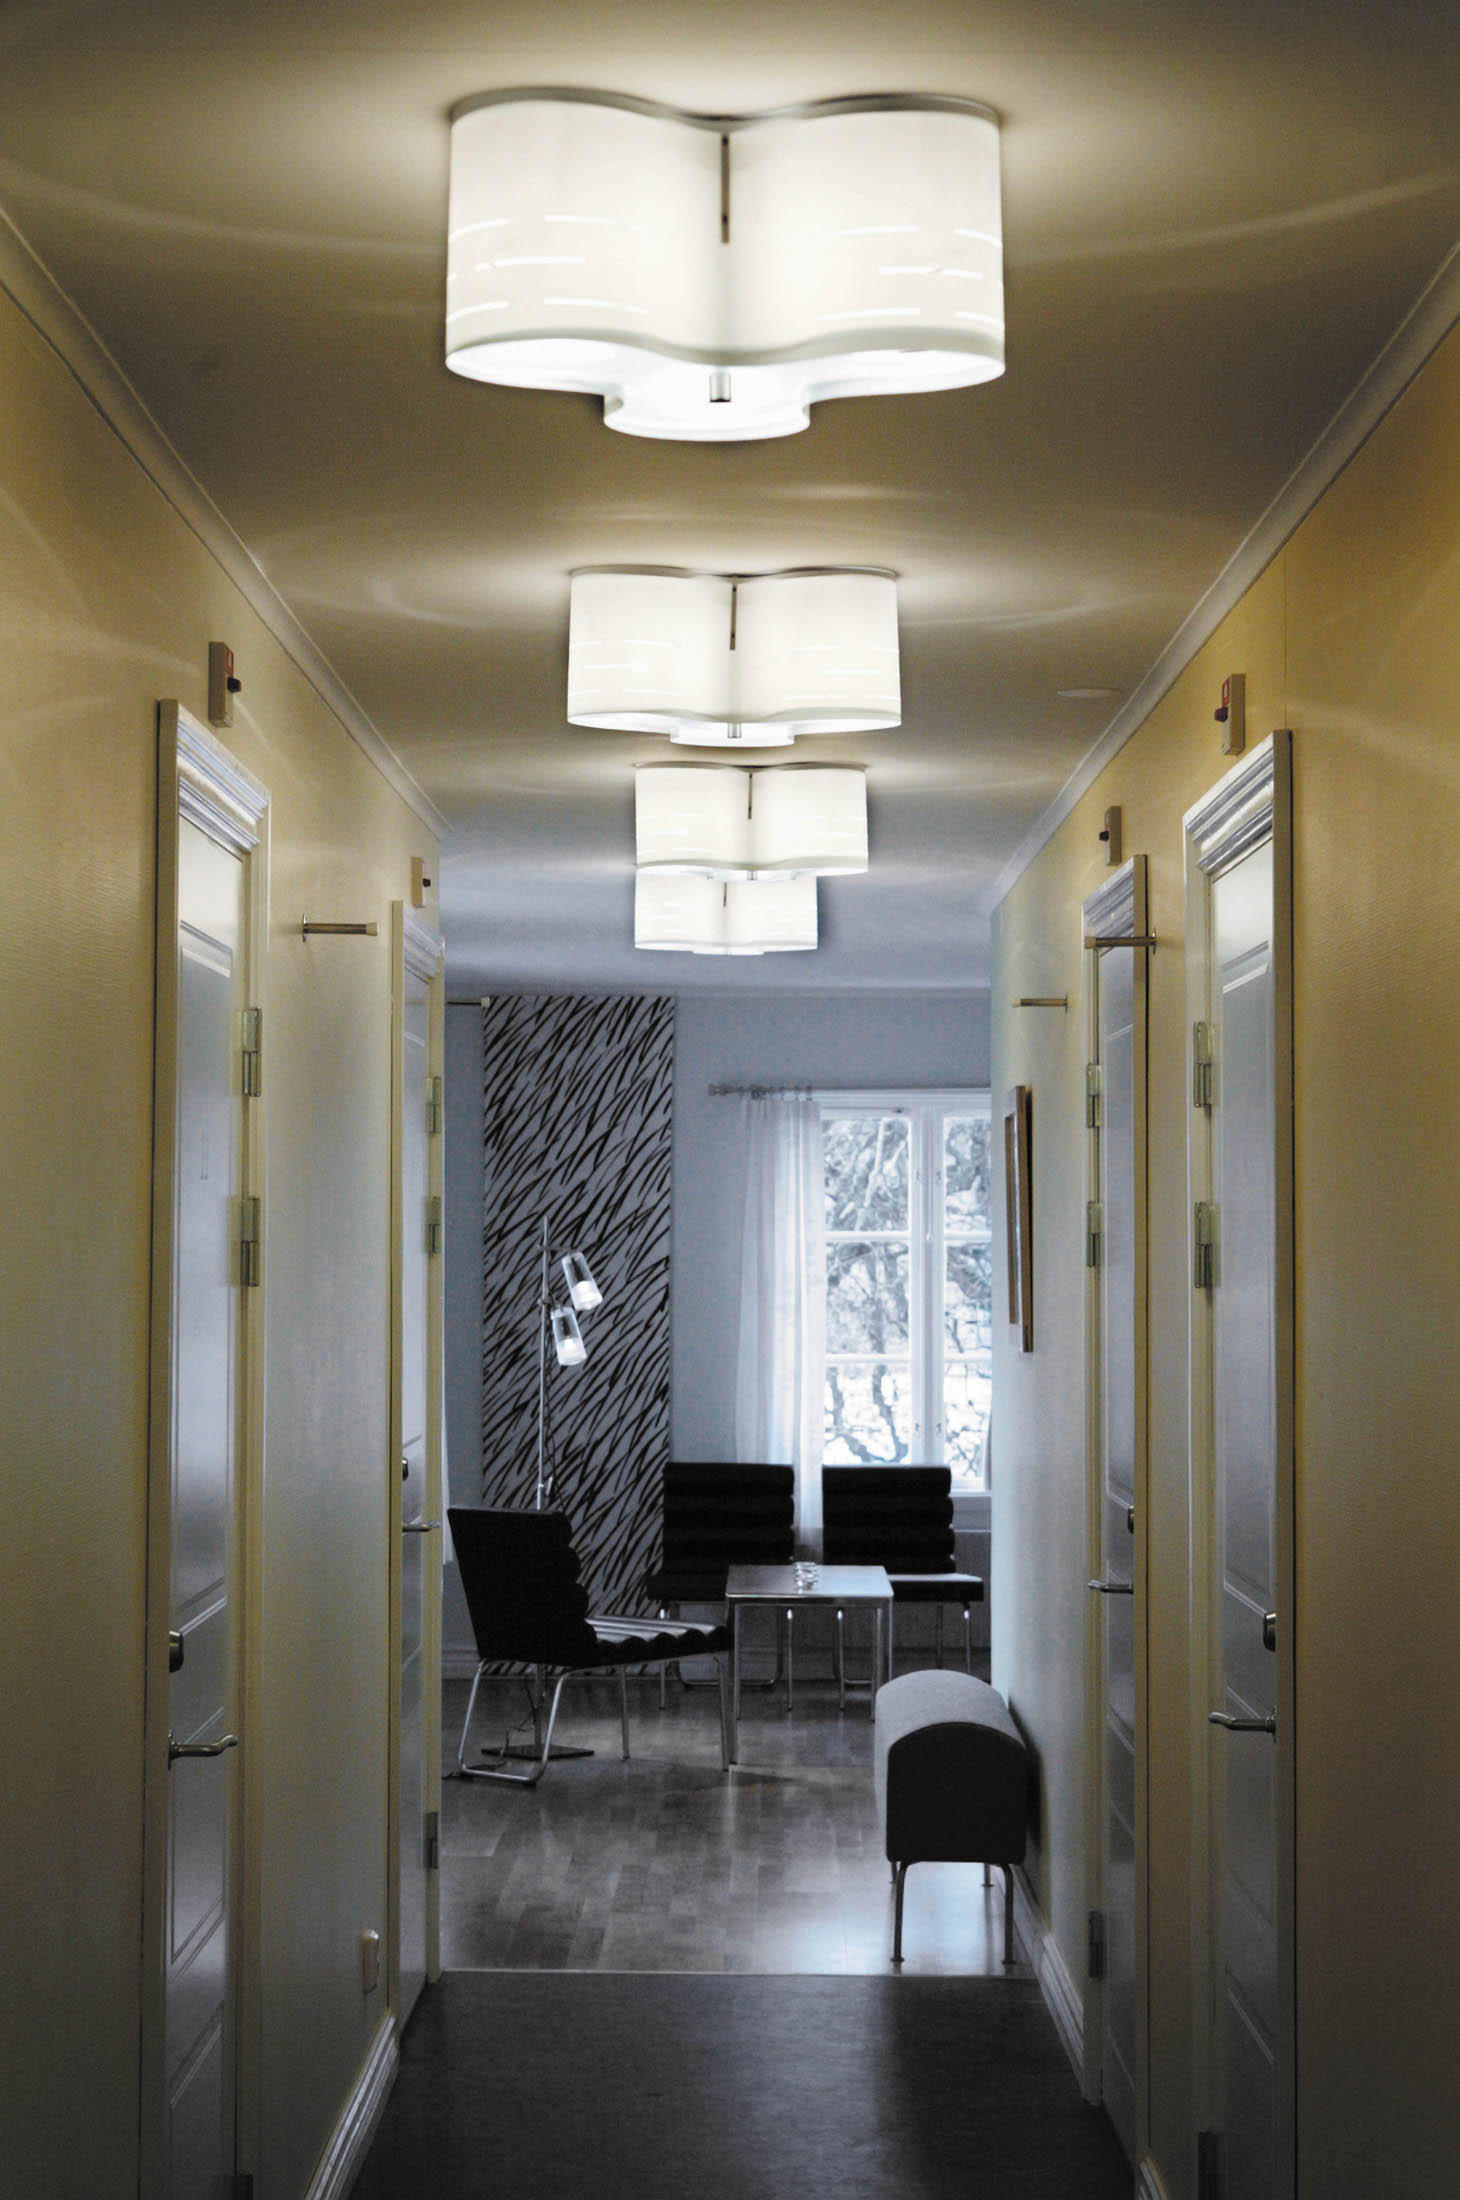 Clover 12c ceiling light grey general lighting from for Placoplatre decoration plafond